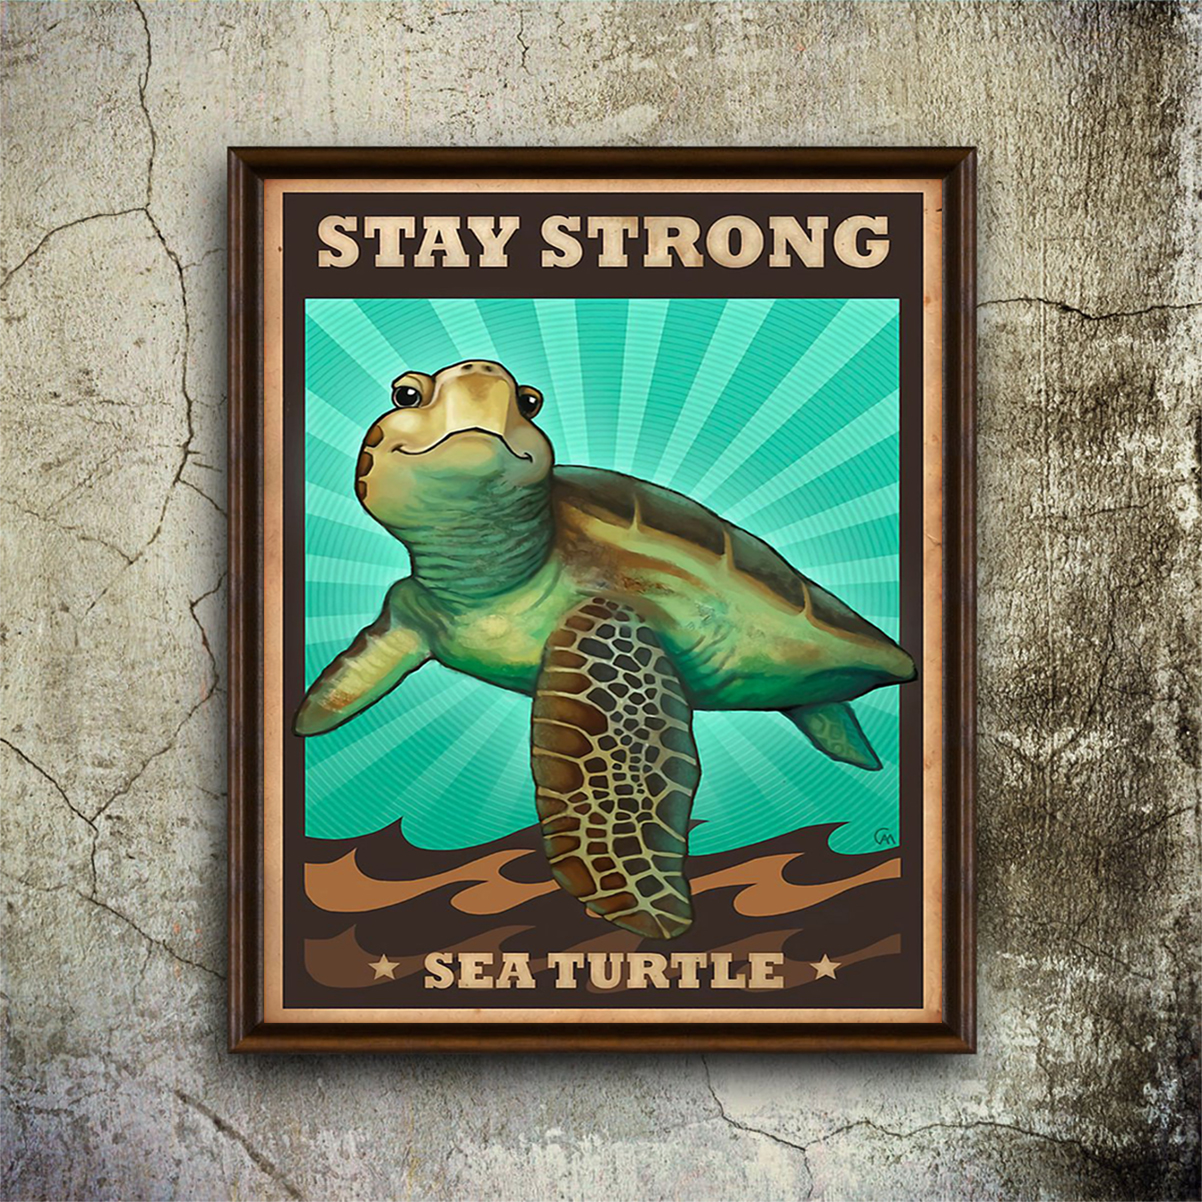 Stay strong sea turtle poster A1